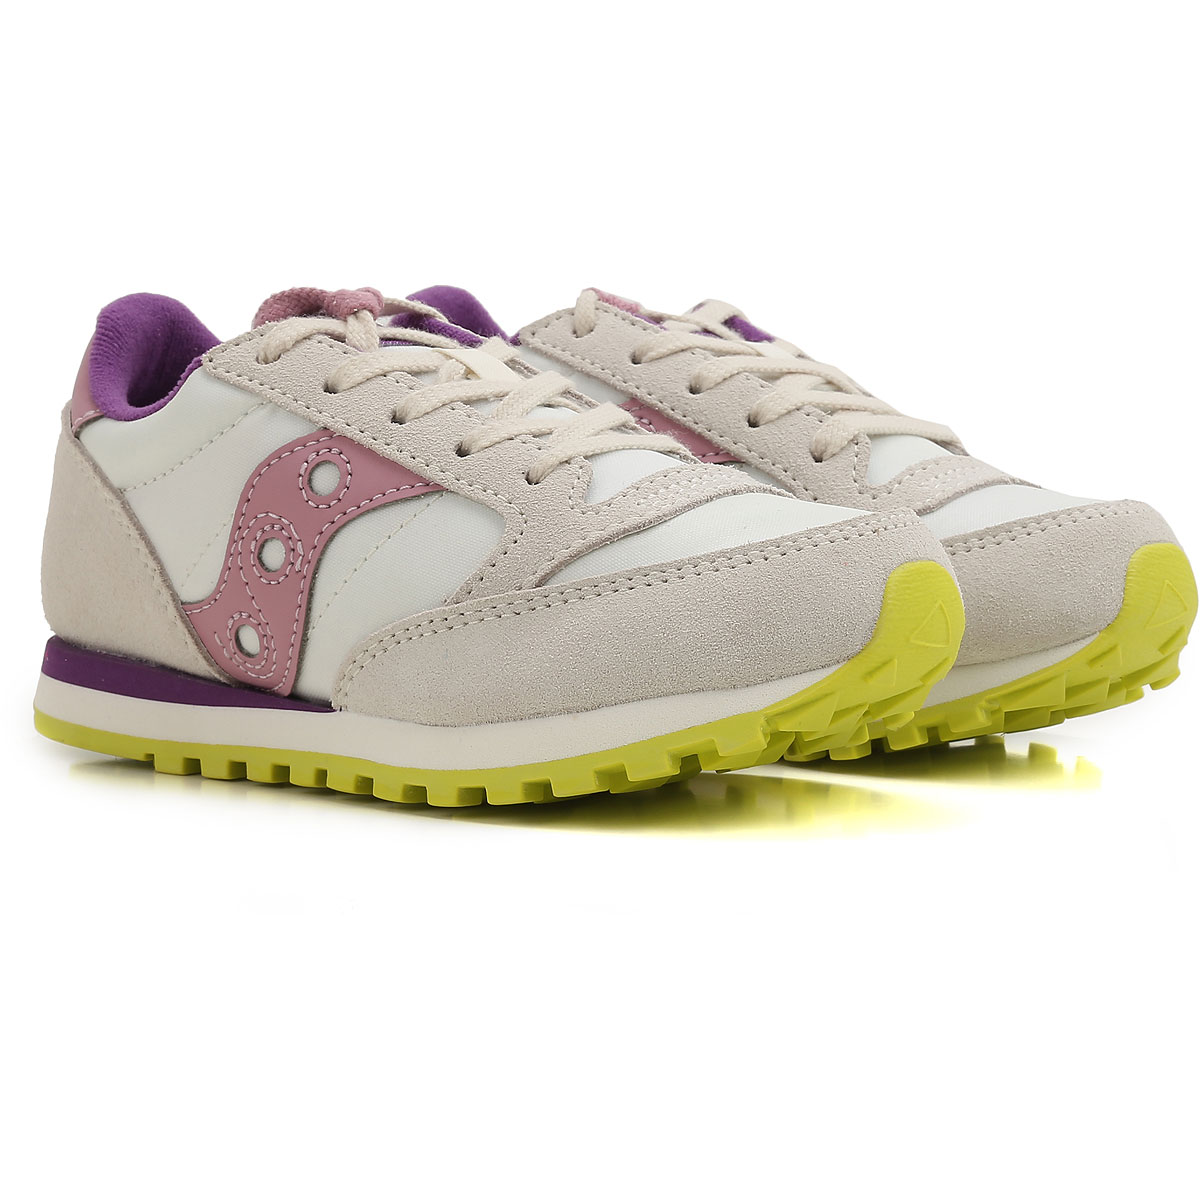 Image of Saucony Kids Shoes for Girls On Sale in Outlet, White, Fabric, 2017, UK 10.5 - EUR 28 Toddler 13 - Ita 31 UK 13.5 - EUR 32 Child 2.5 - Ita 34